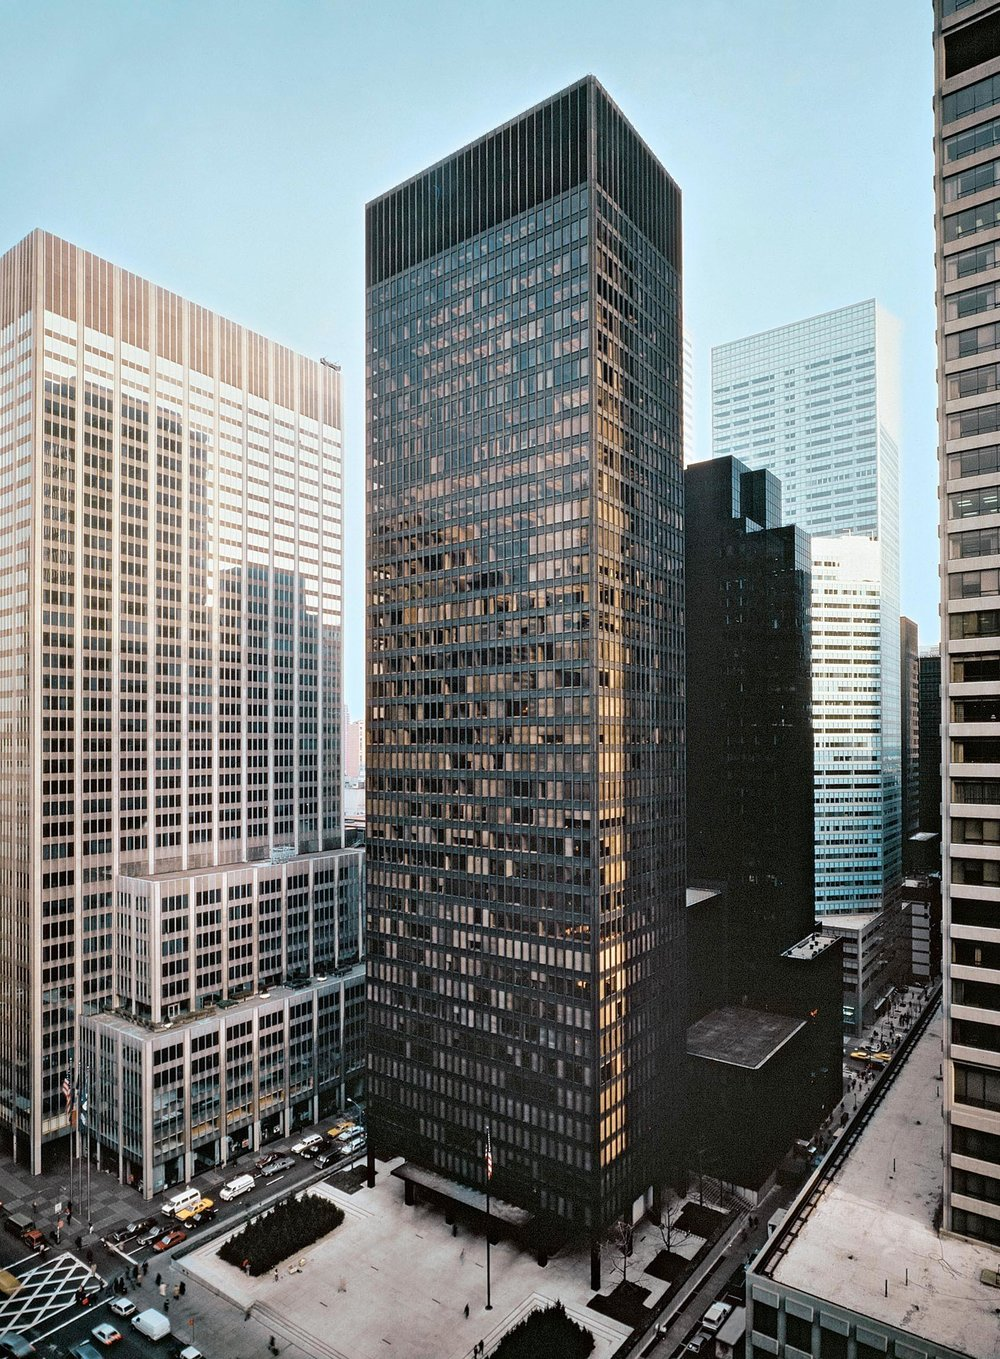 Seagram Building, Ludwig Mies van der Rohe, Philip Johnson